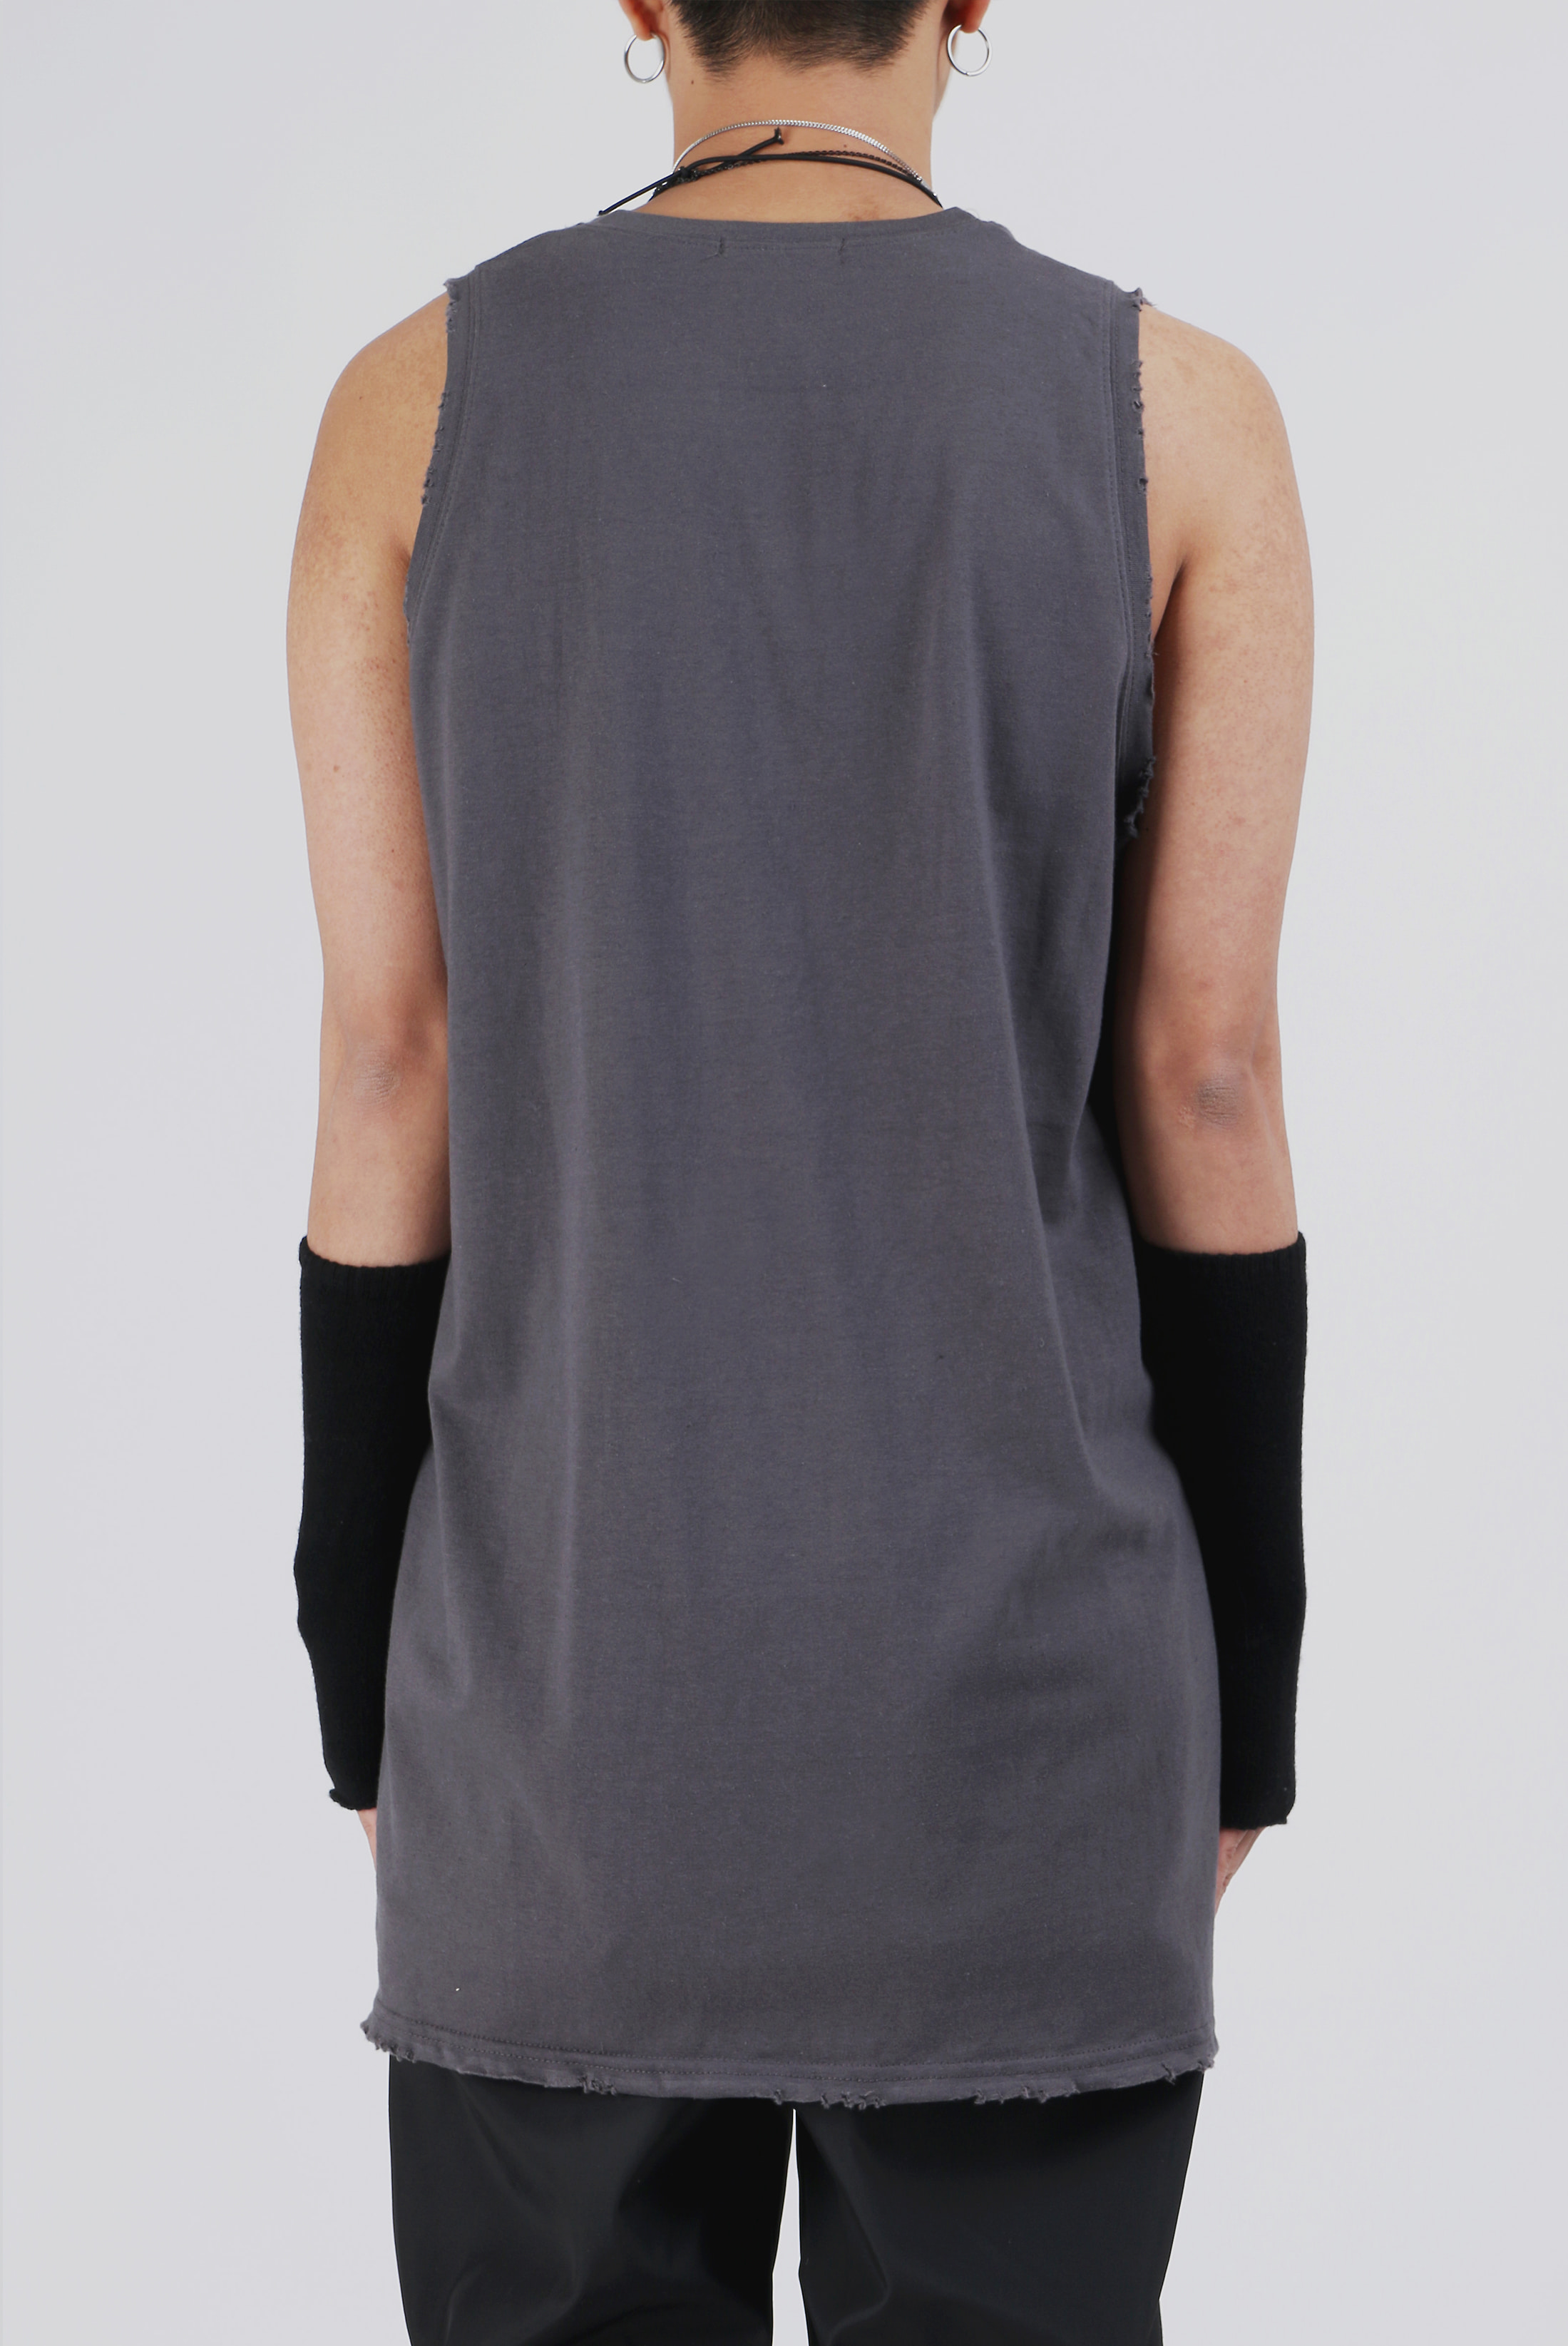 Basic Long Grunge Sleeveless